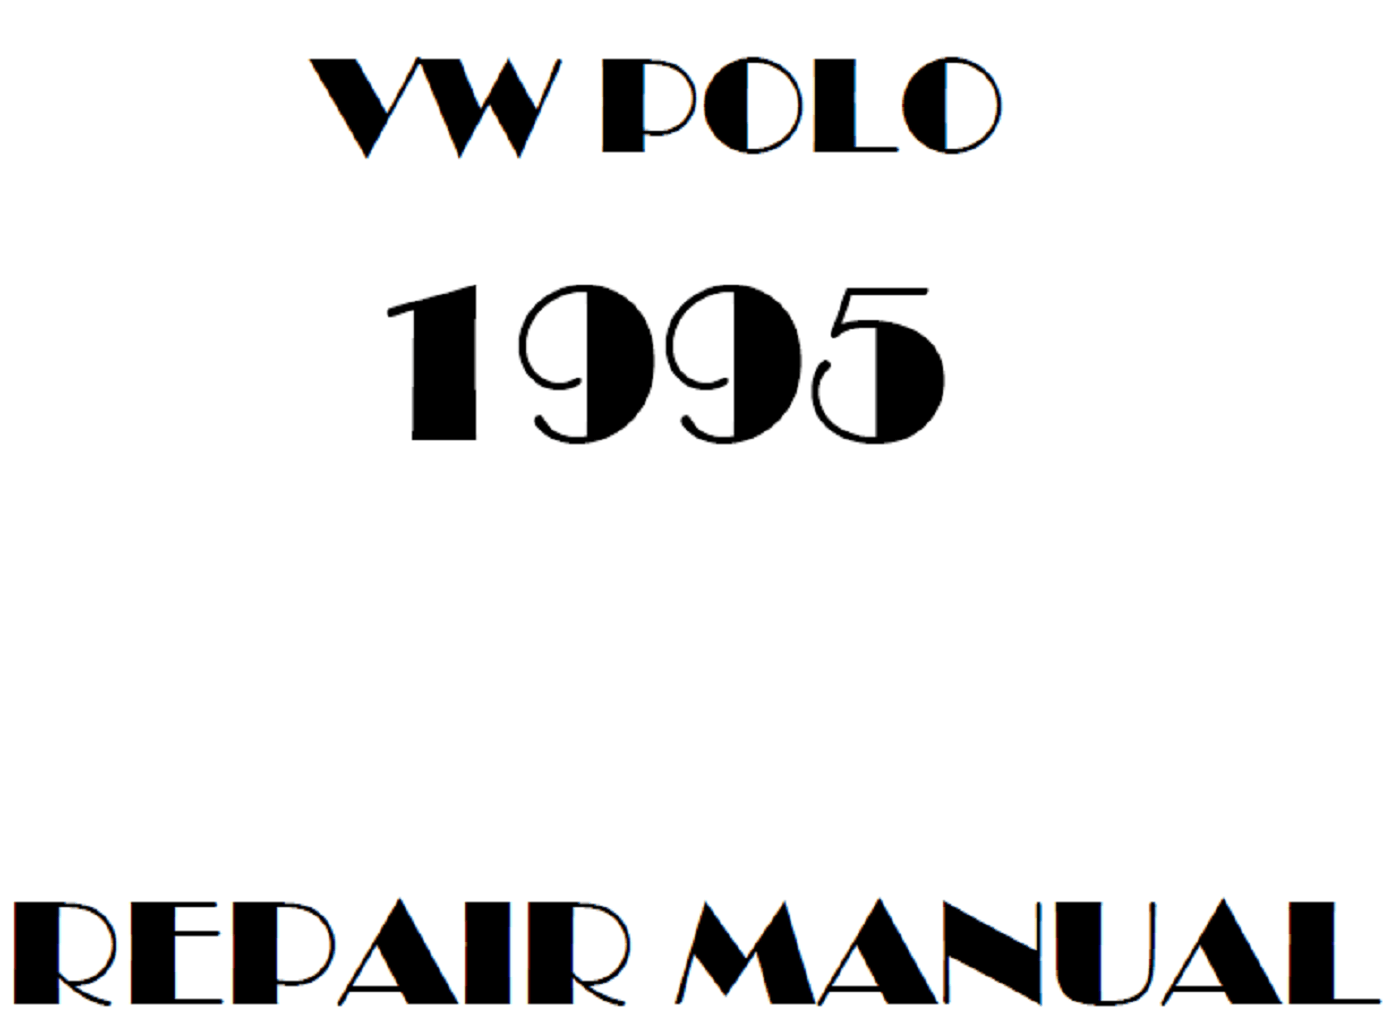 1995 Volkswagen Polo repair manual